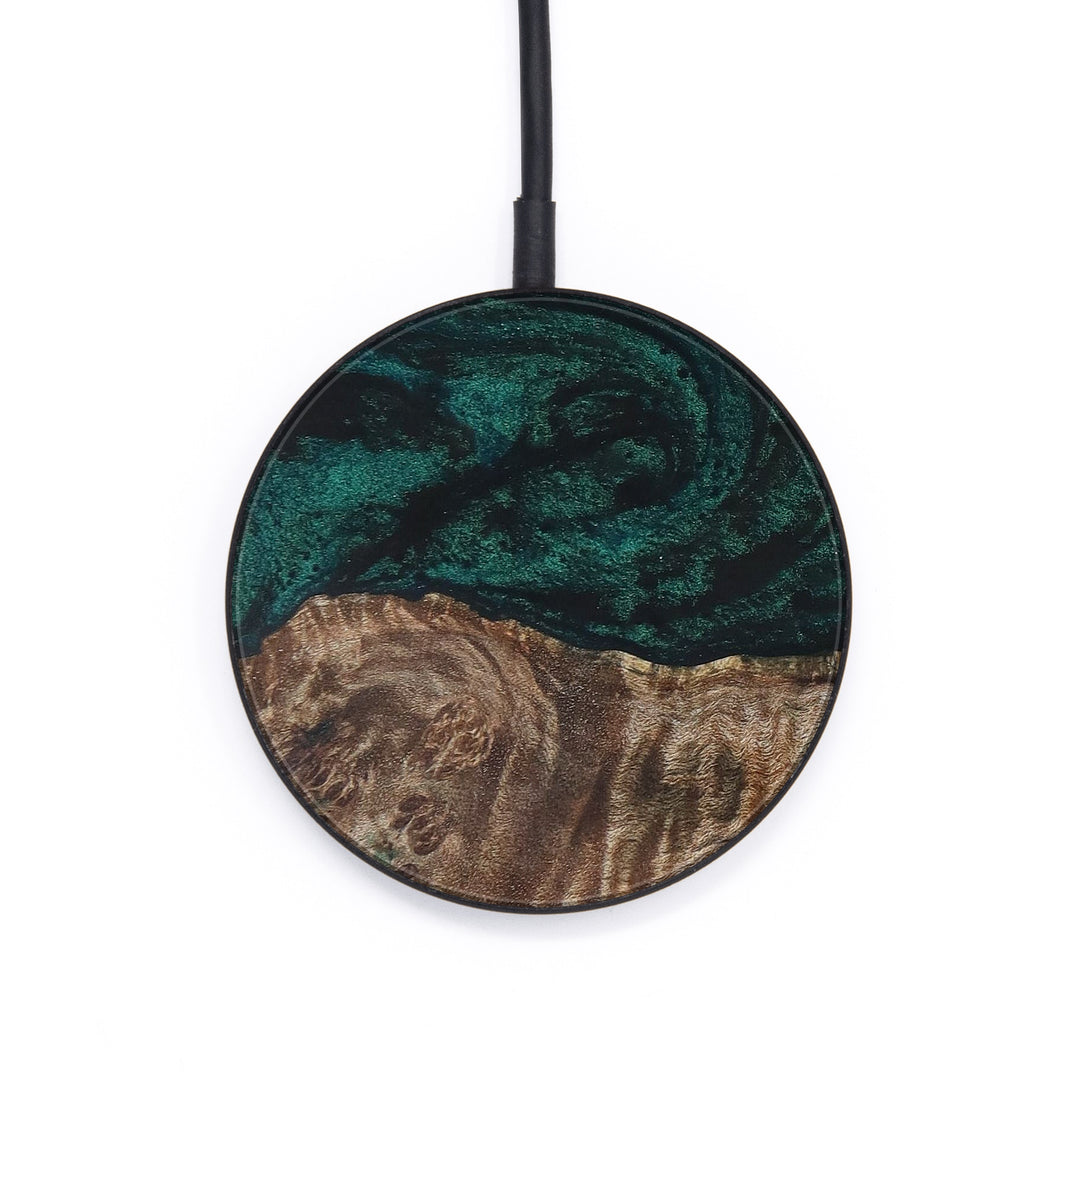 Circle Wood+Resin Wireless Charger - Martelle (Dark Green, 400123)